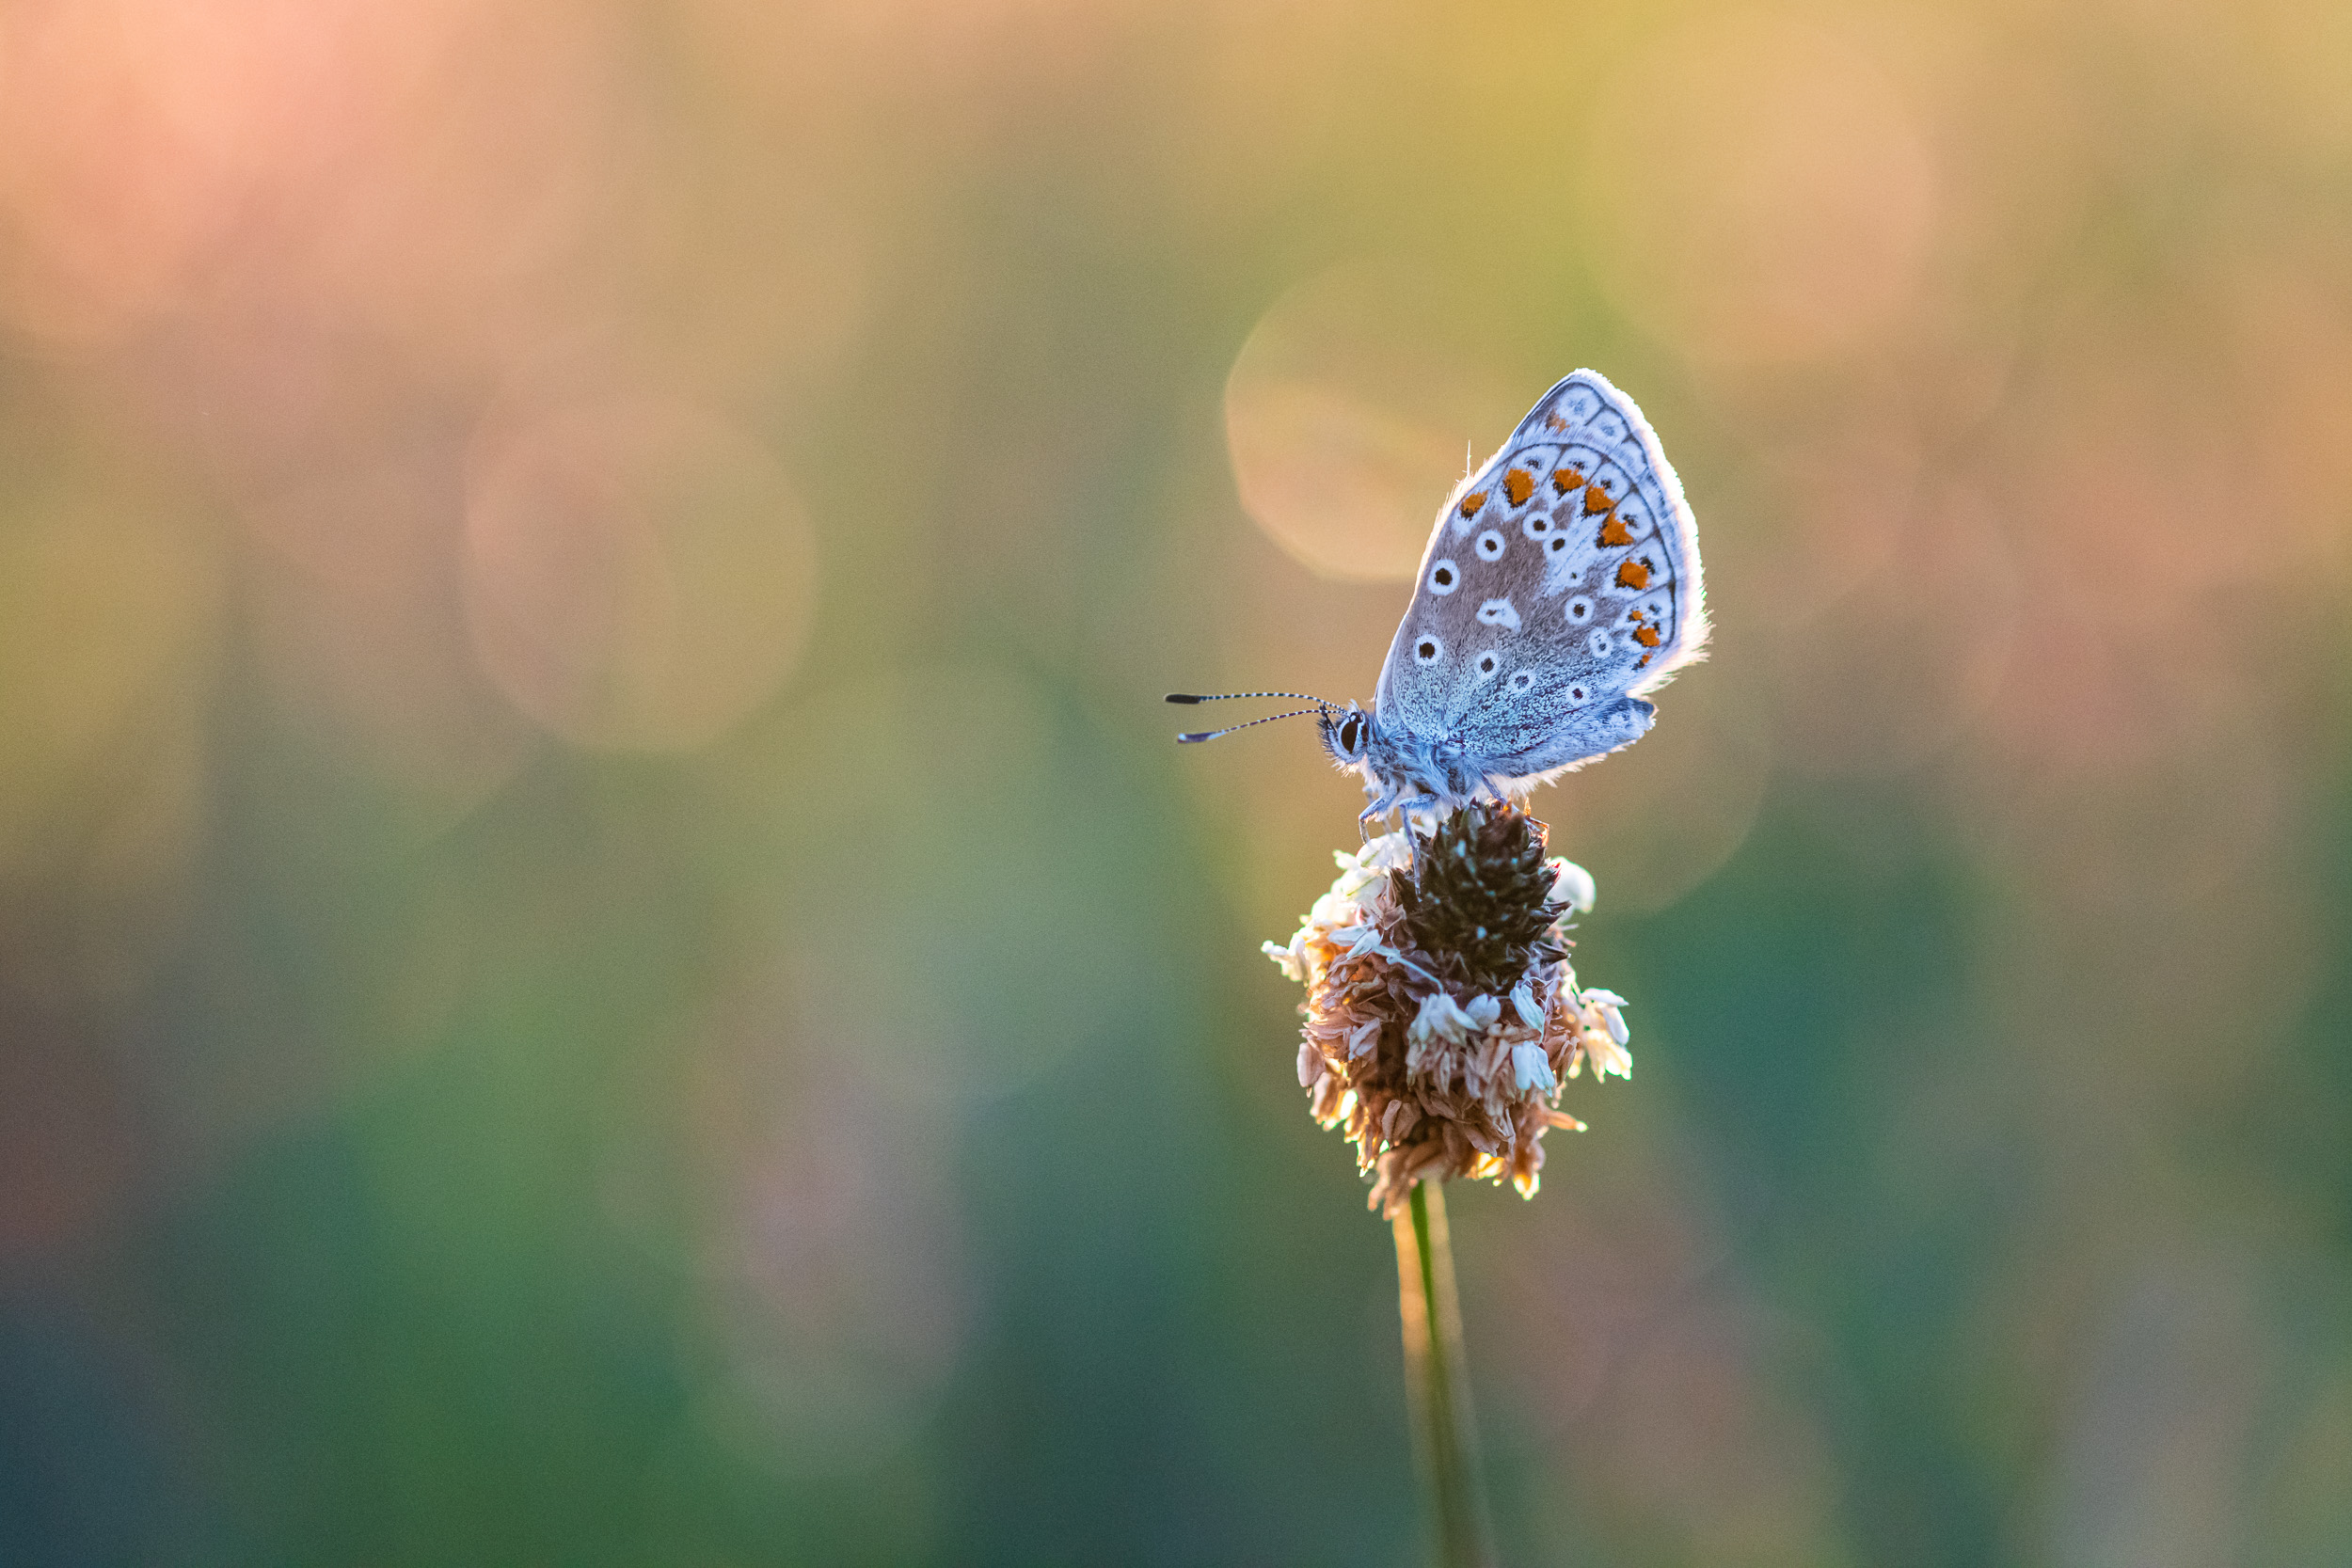 Common Blue #2, Devon  - Nikon D850, Zeiss 100mm f/2 at f/3.2, 1/800th second at ISO 1600